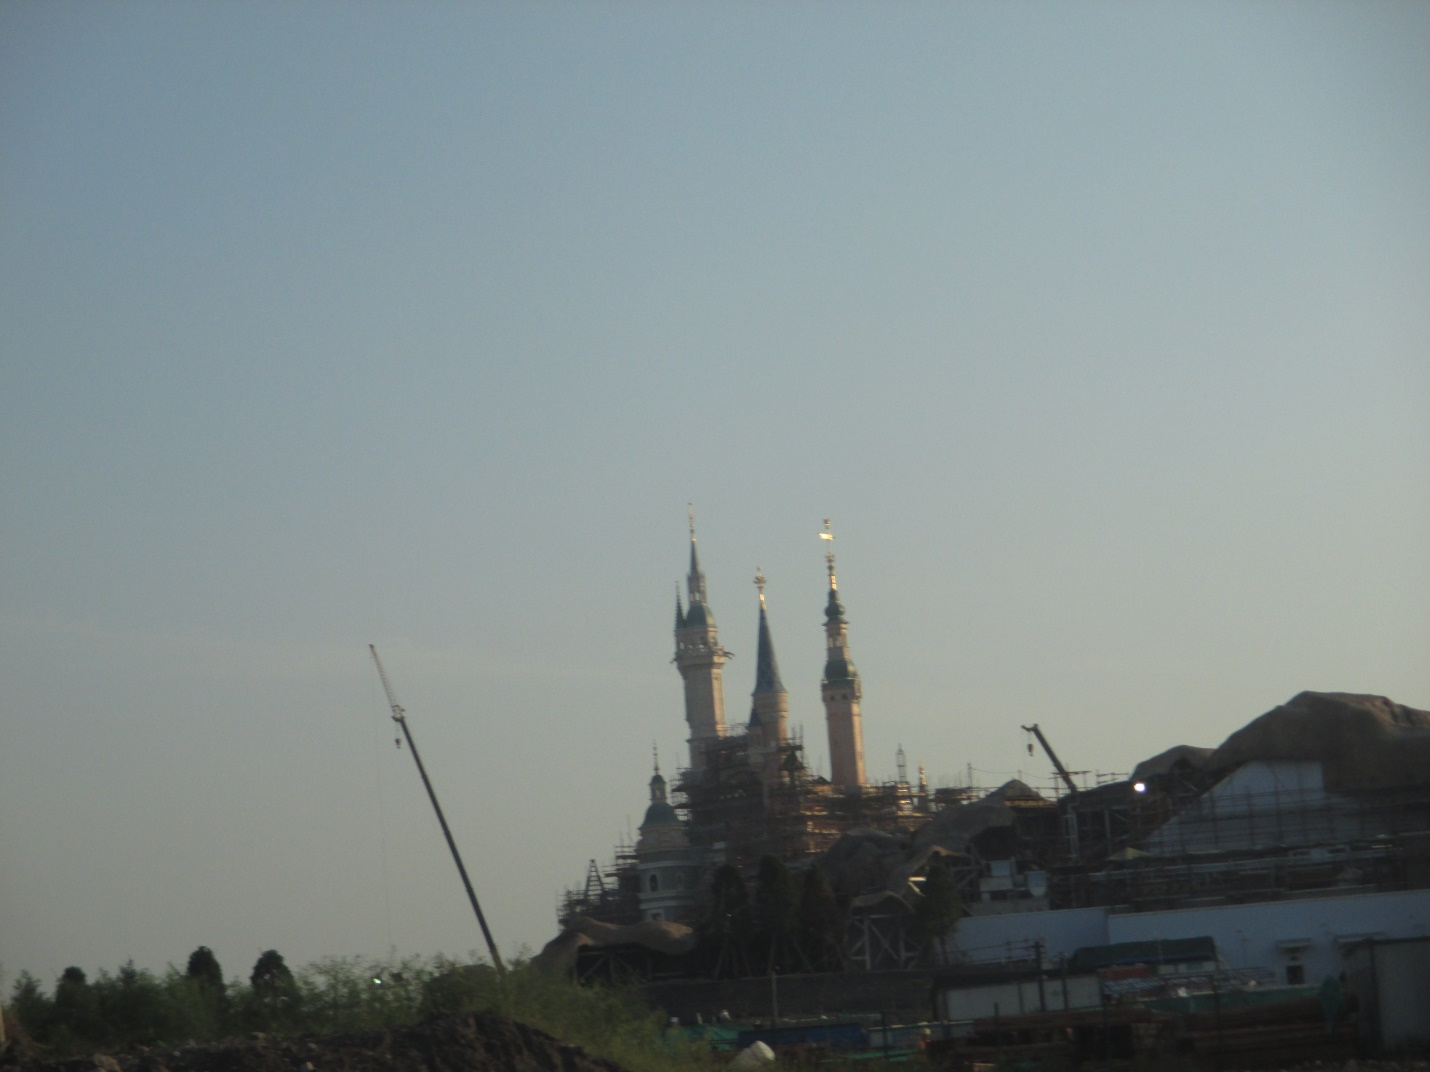 The big Disneyland castle being built in Shanghai, China.